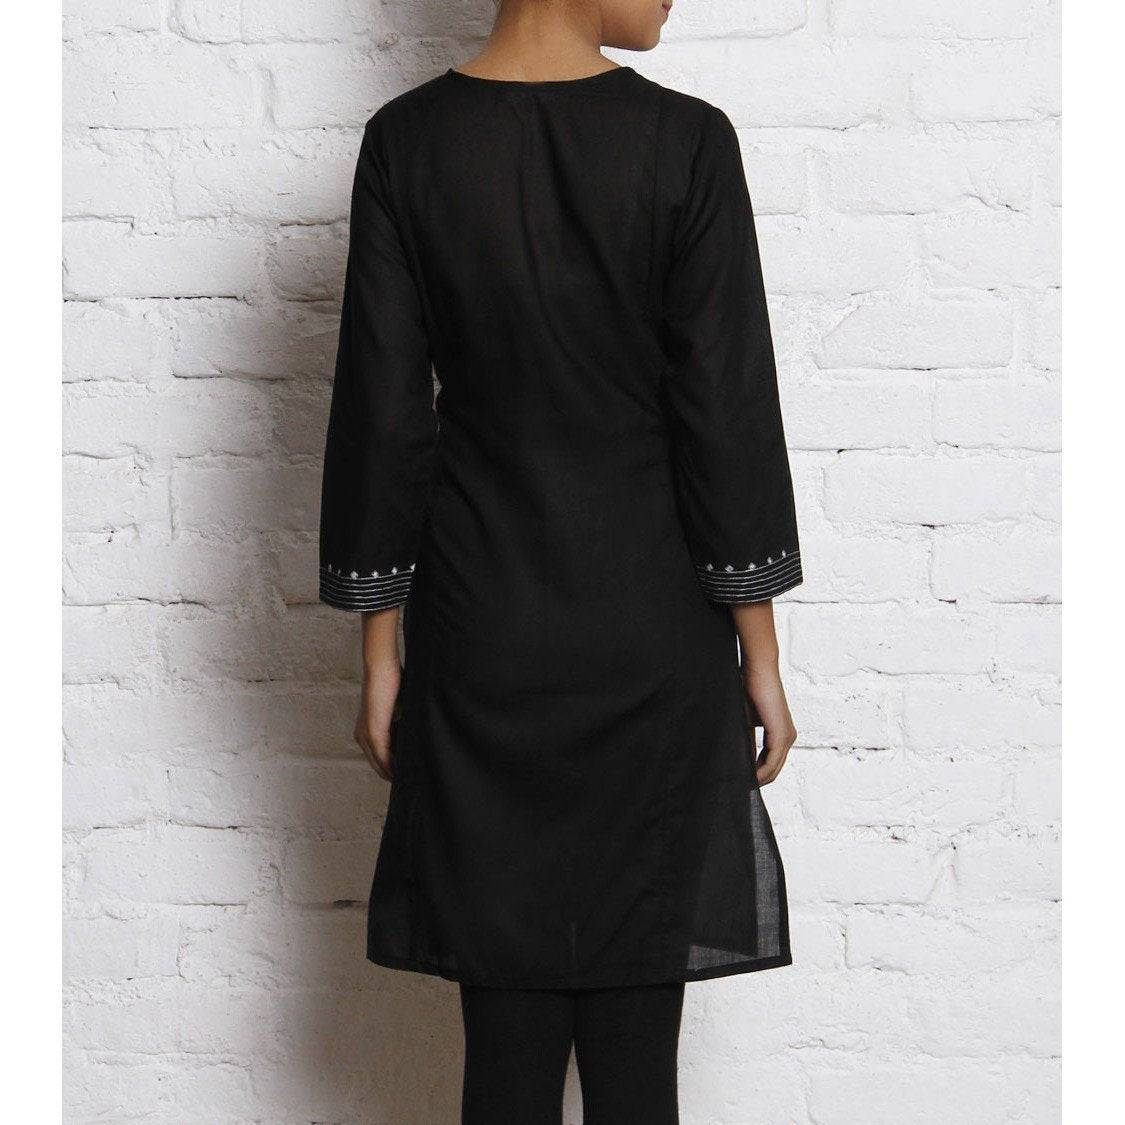 Black Embroidered Voile Kurti - rangoutlet.com